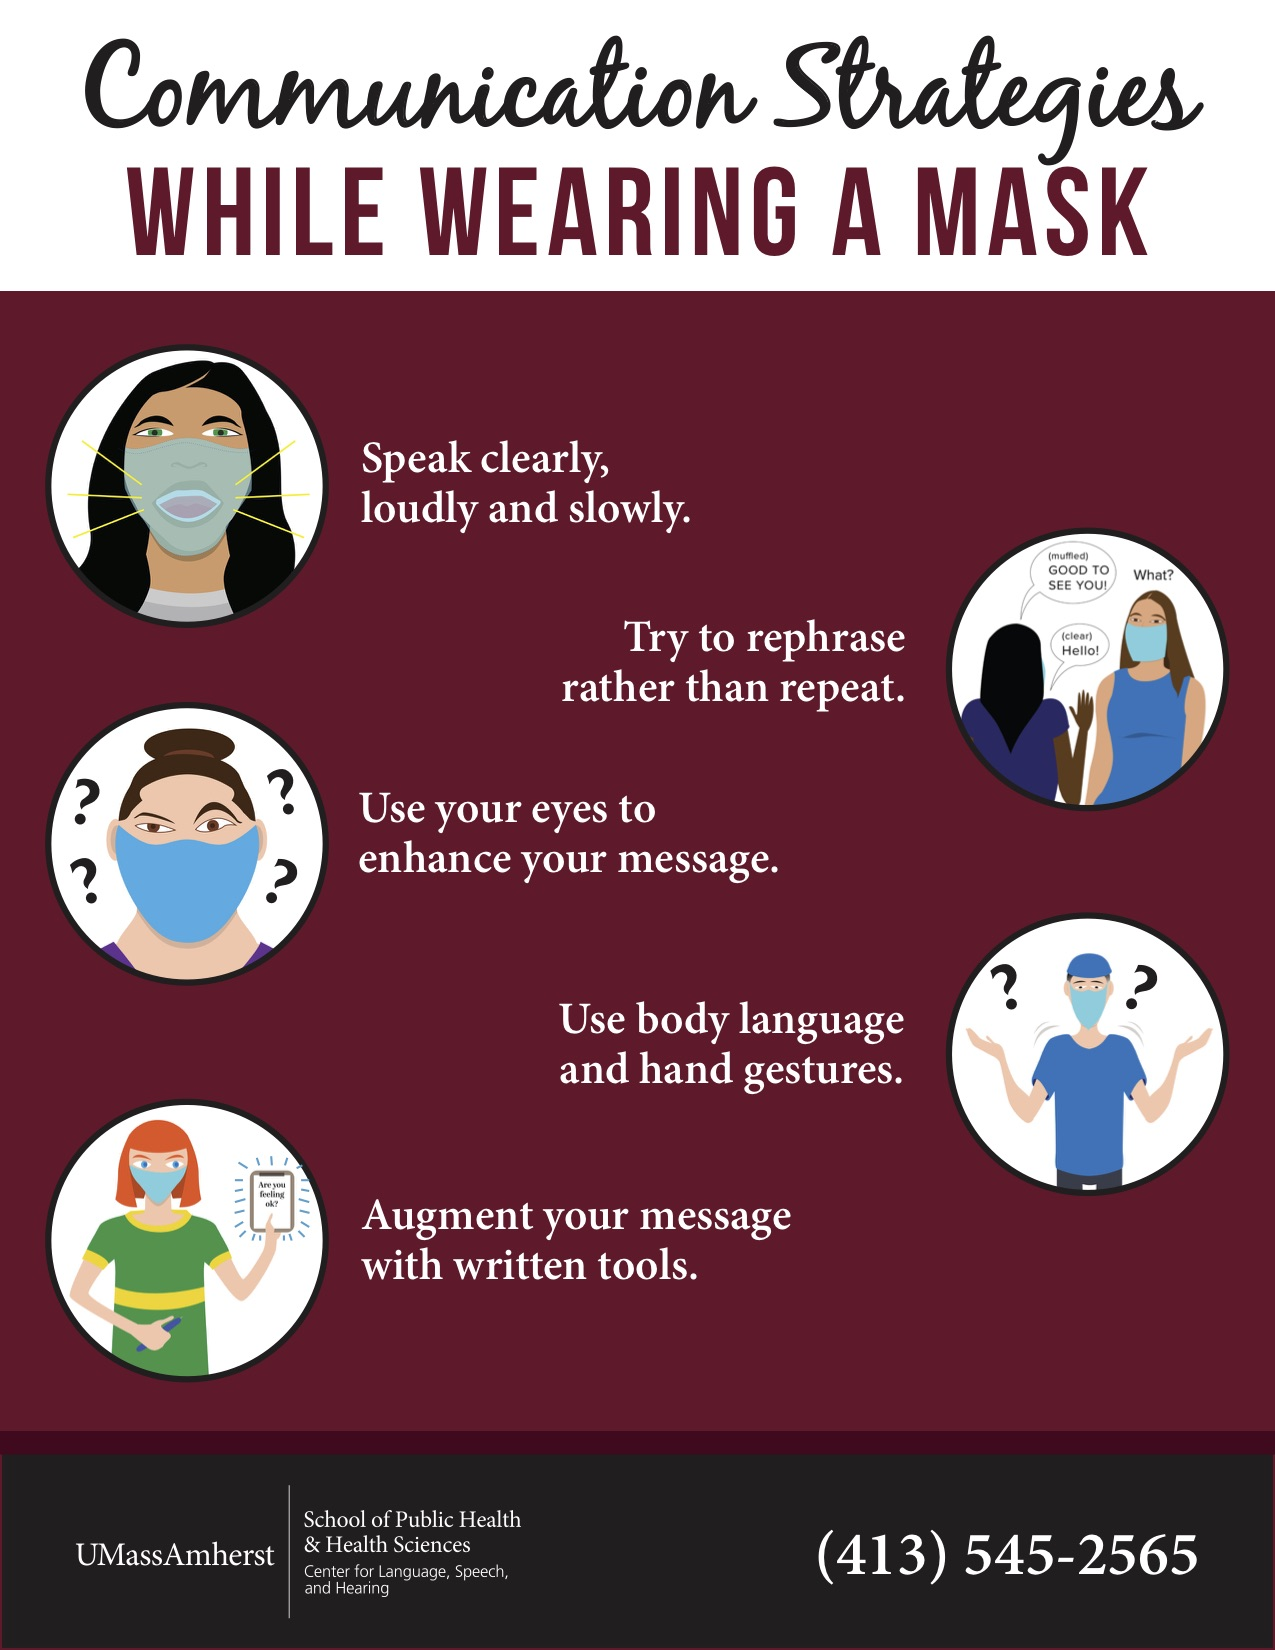 infographic%20recommending%20that%20masked%20speakers%20speak%20loudly%2C%20clearly%2C%20and%20use%20body%20language%20and%20written%20materials%20to%20help%20people%20hear%20them